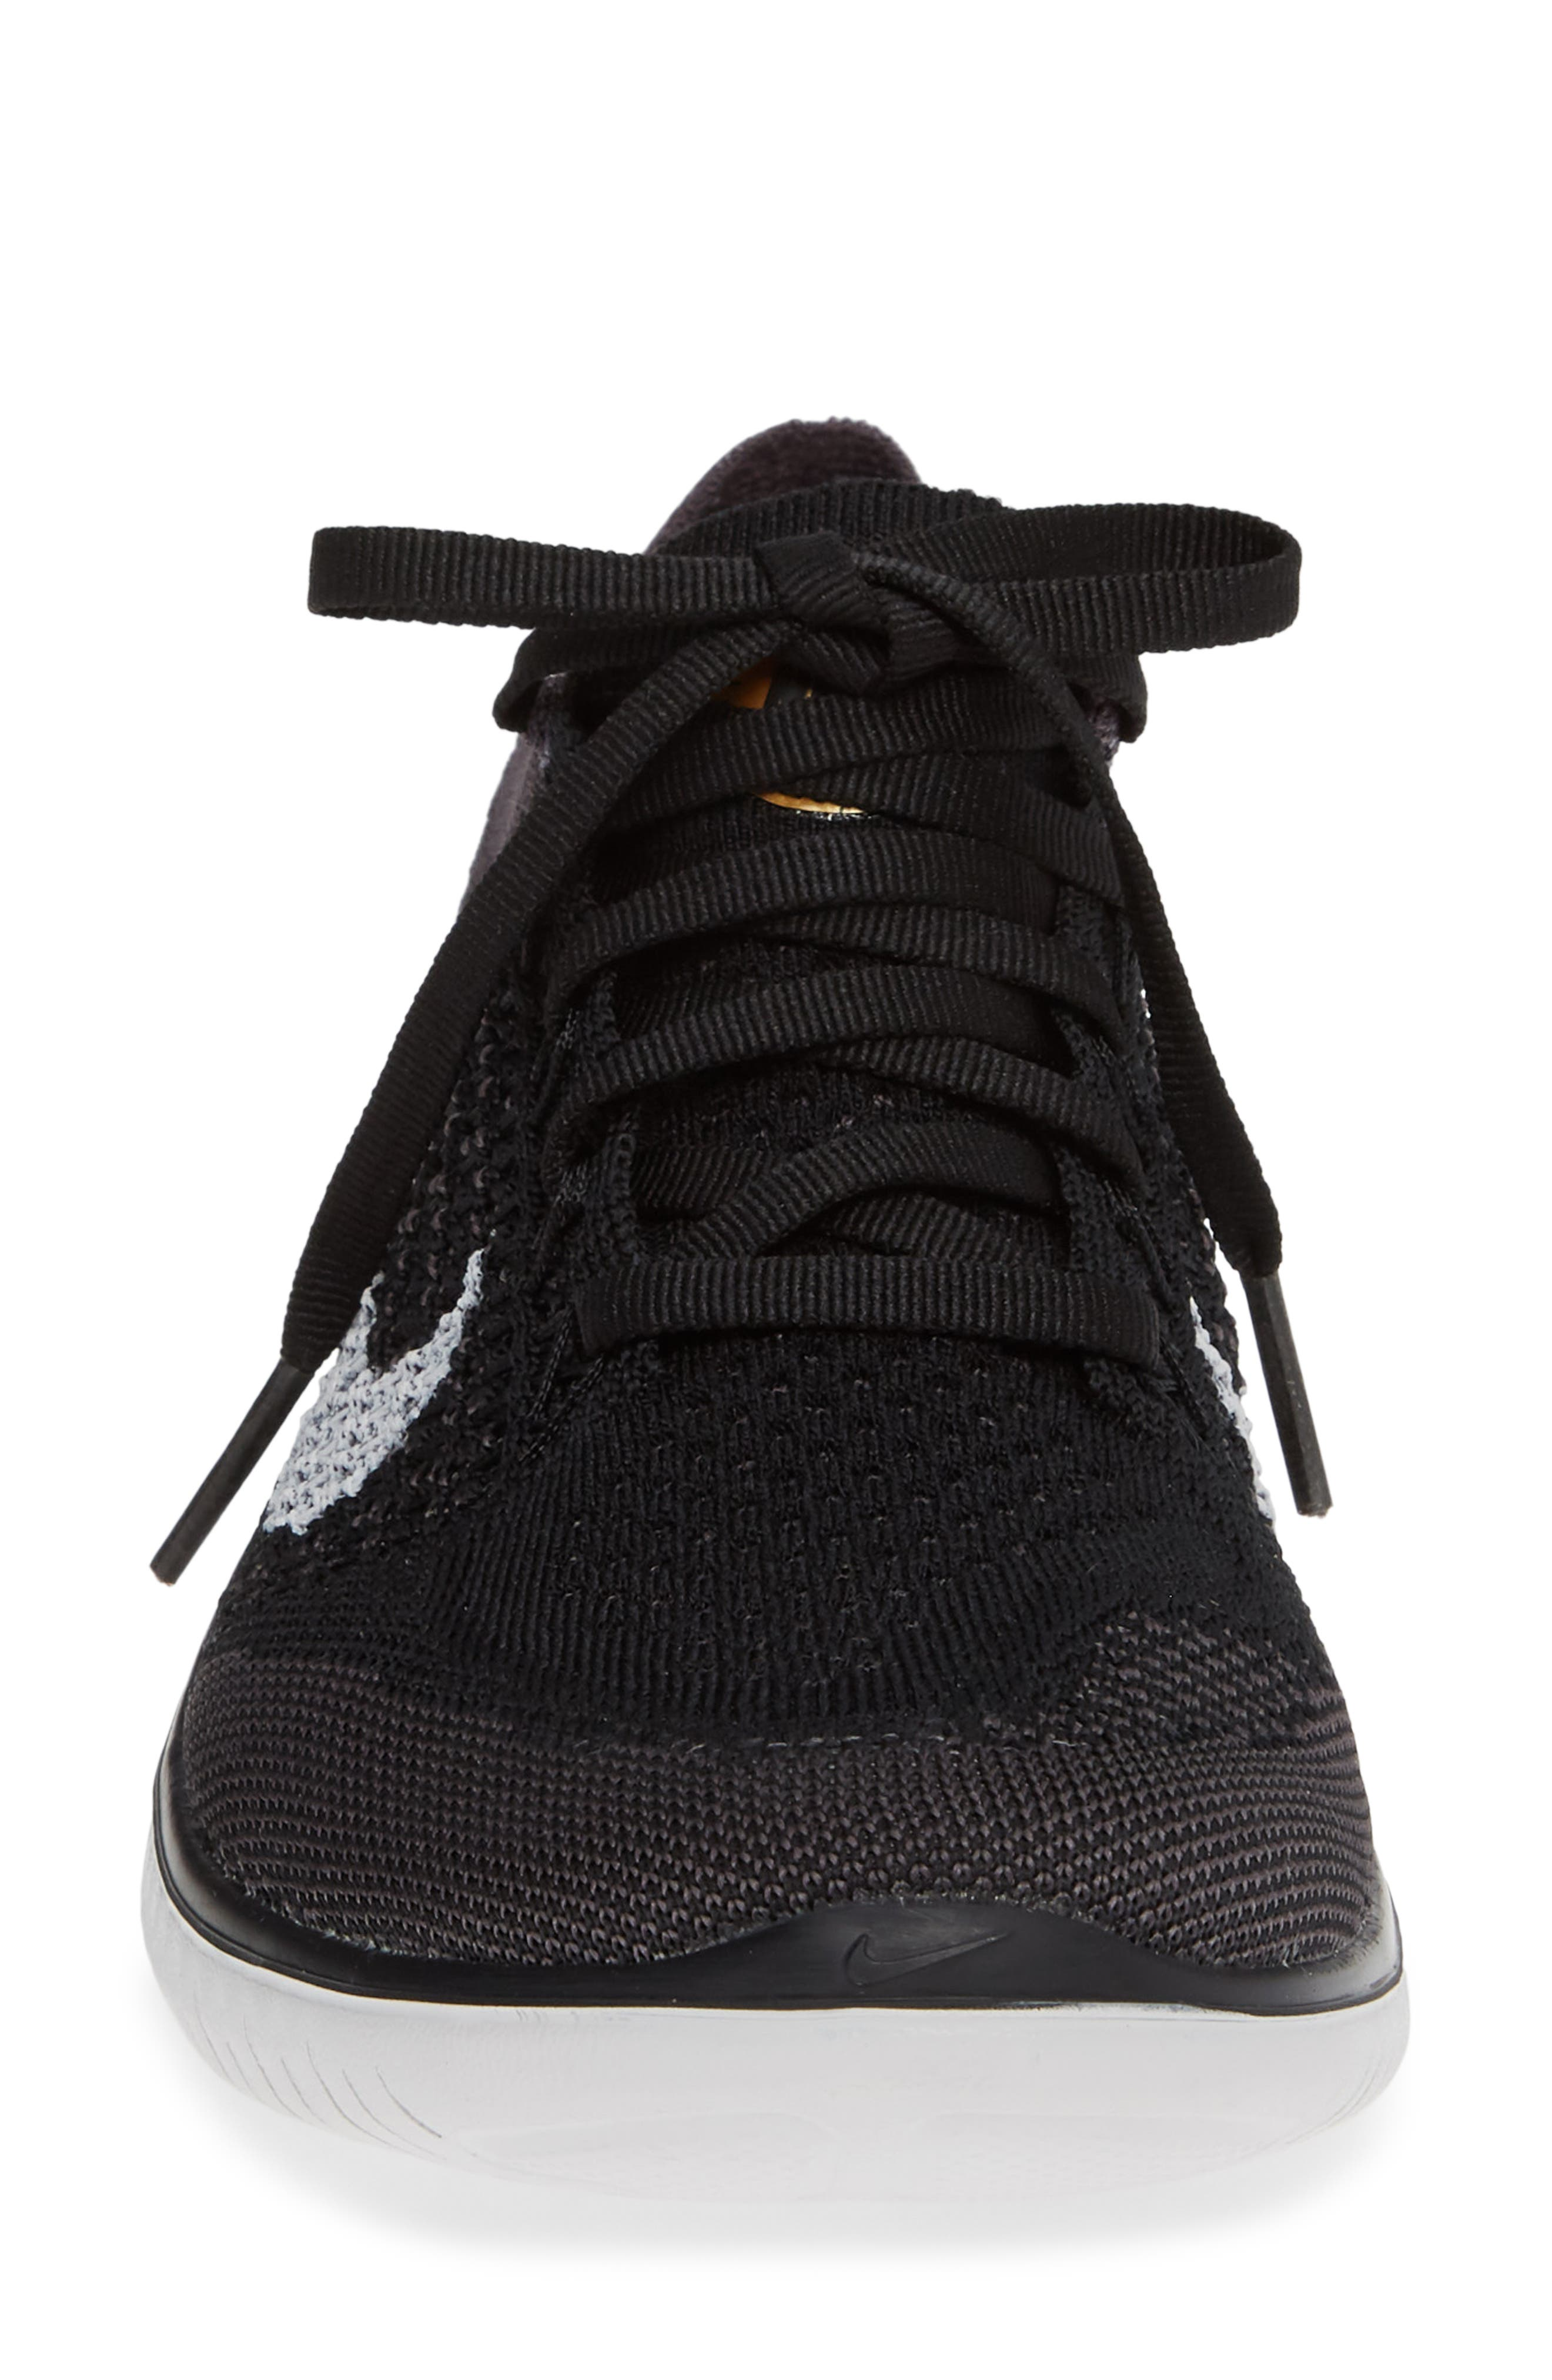 Free RN Flyknit 2018 Running Shoe,                             Alternate thumbnail 34, color,